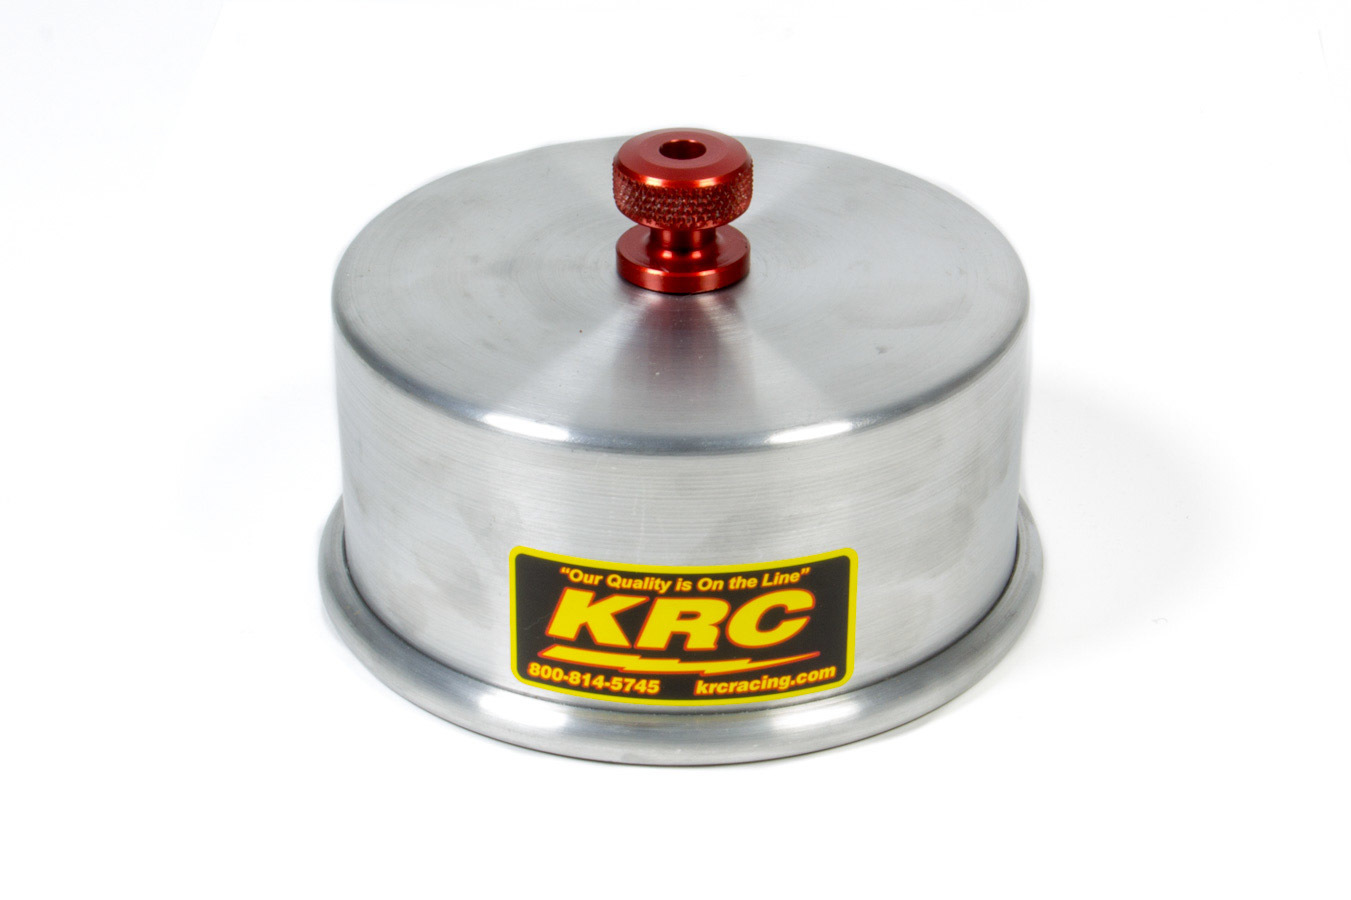 Kluhsman Racing Products 1030 Carburetor Cover, 5/16-18 in Speed Nut, O-Ring Seal, Aluminum, Natural, 5-1/8 in Flange, Each